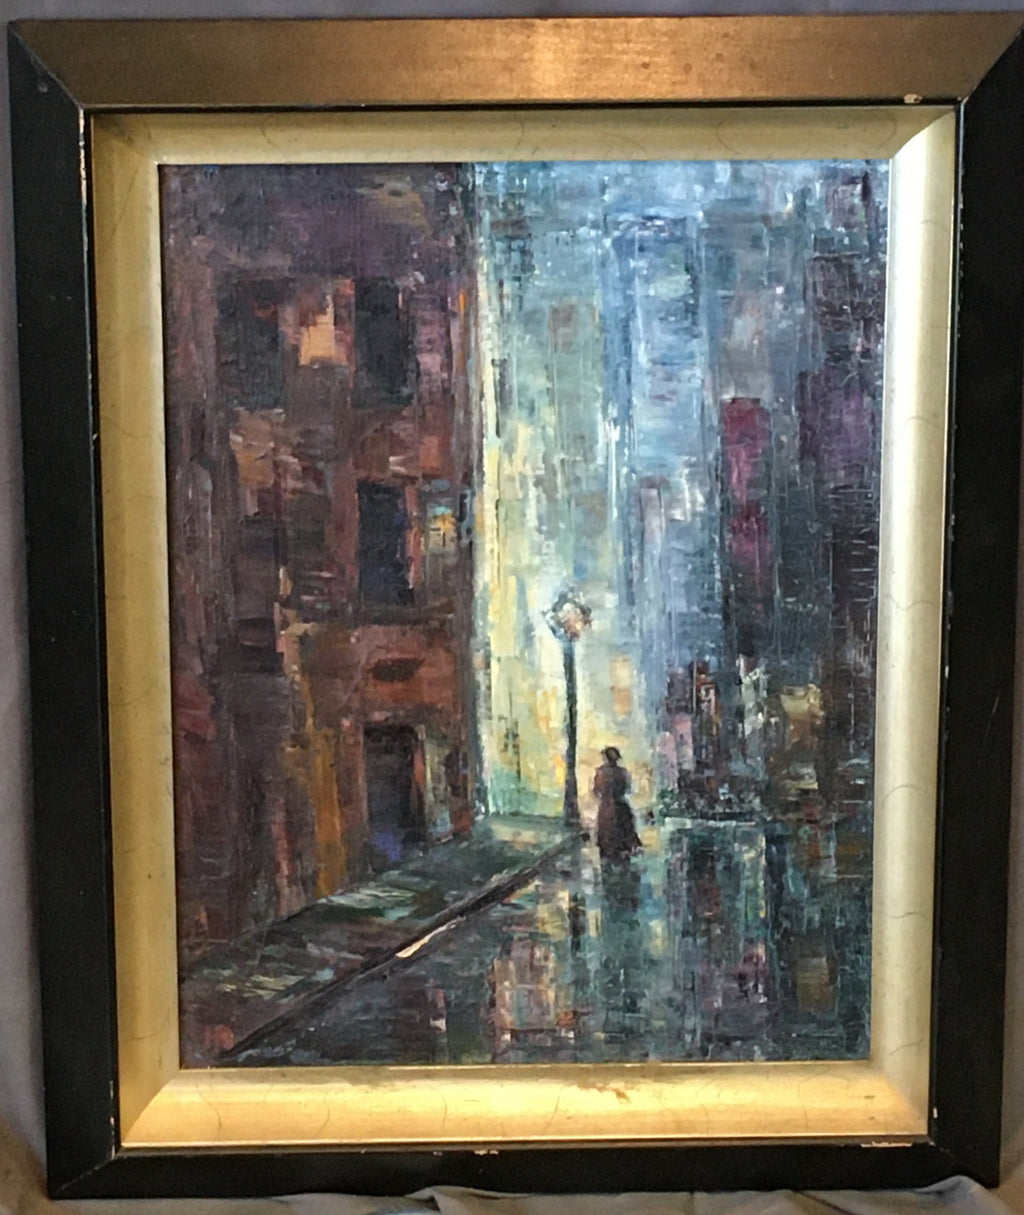 IMPRESSIONISTIC OIL ON CANVAS PAINTING OF NIGHT TIME CITY SCENE WITH LADY WALKING